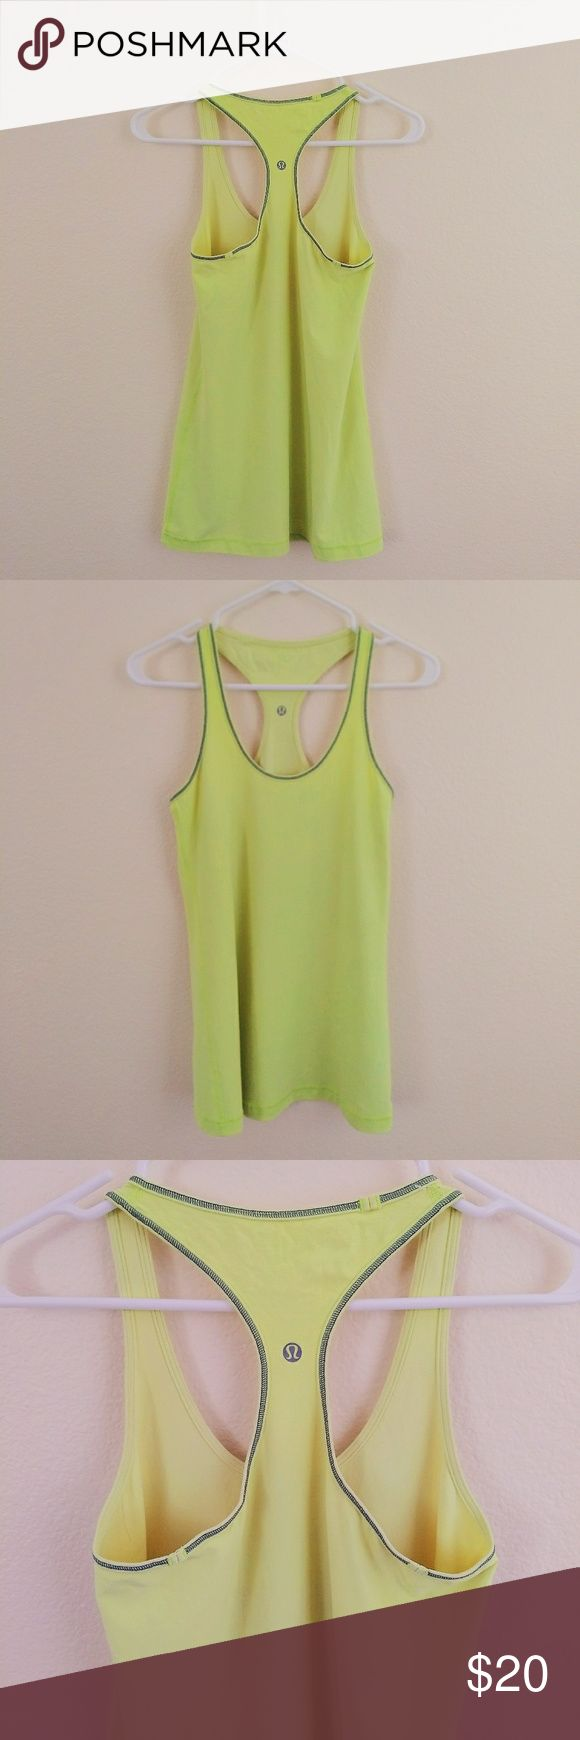 Lululemon Yellow Tank Top Yellow tank top, gray lining. There is no size tag so the size is my best guess  based on measurements. Exercise tank top. Perfect for yoga, running, hiking, etc. Bright and fun color. Great condition, lightly used. Price is open for discussion. lululemon athletica Tops Tank Tops